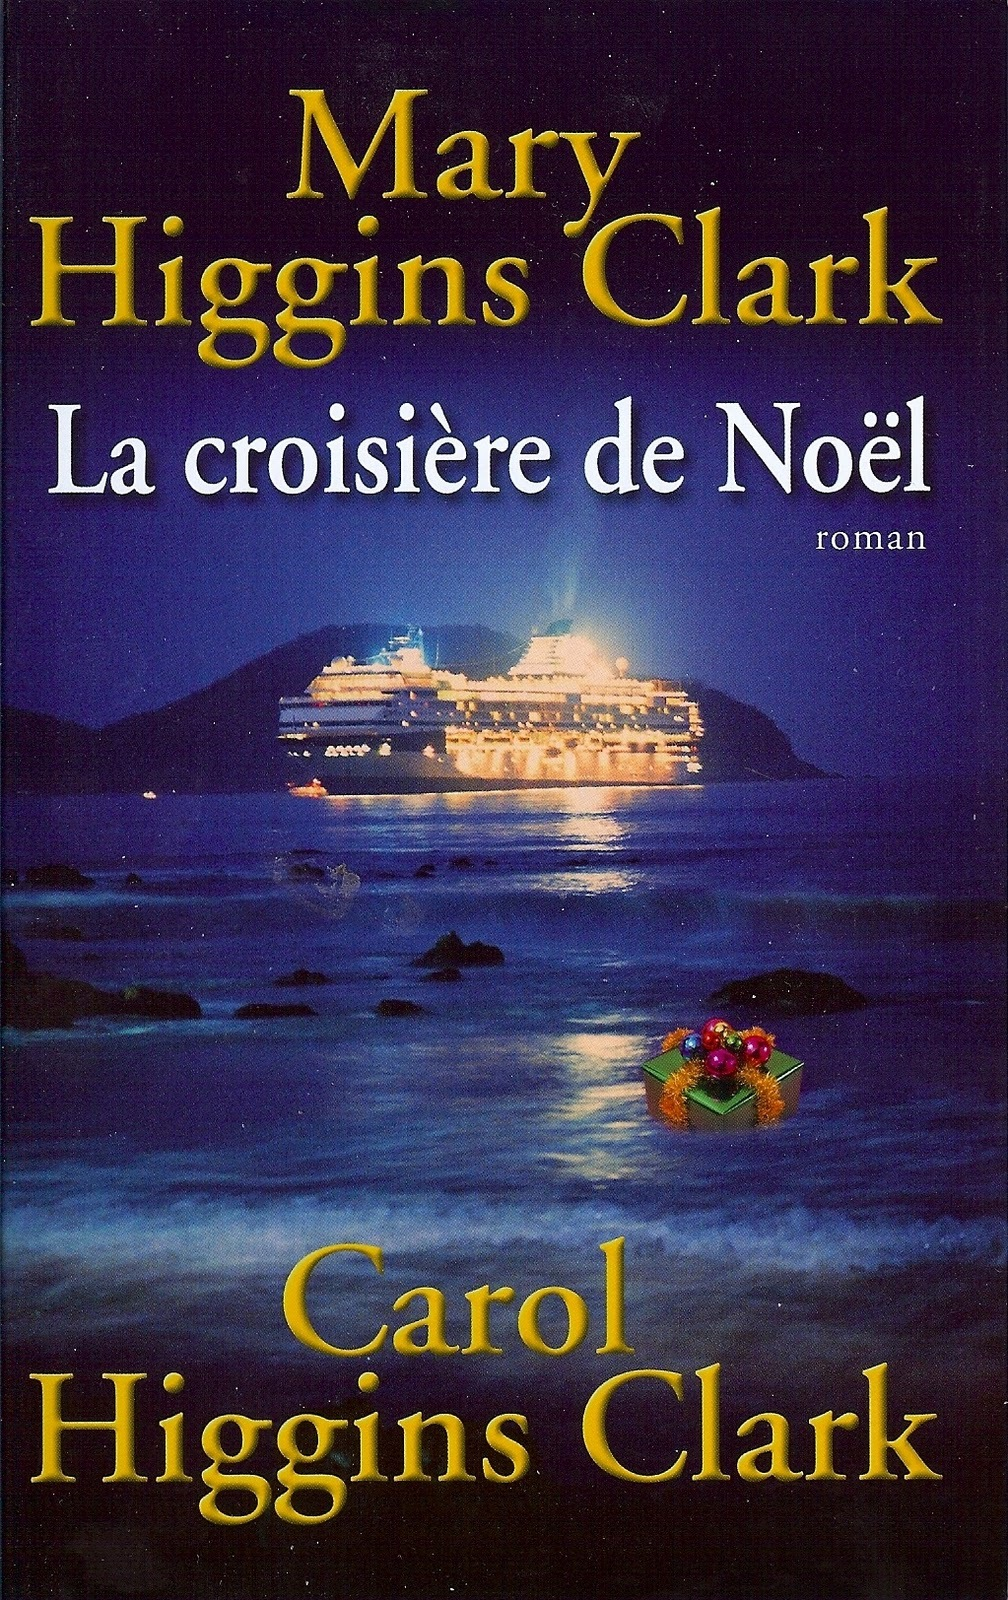 cdn1.booknode.com/book_cover/552/full/la-croisiere-de-noel-551655.jpg